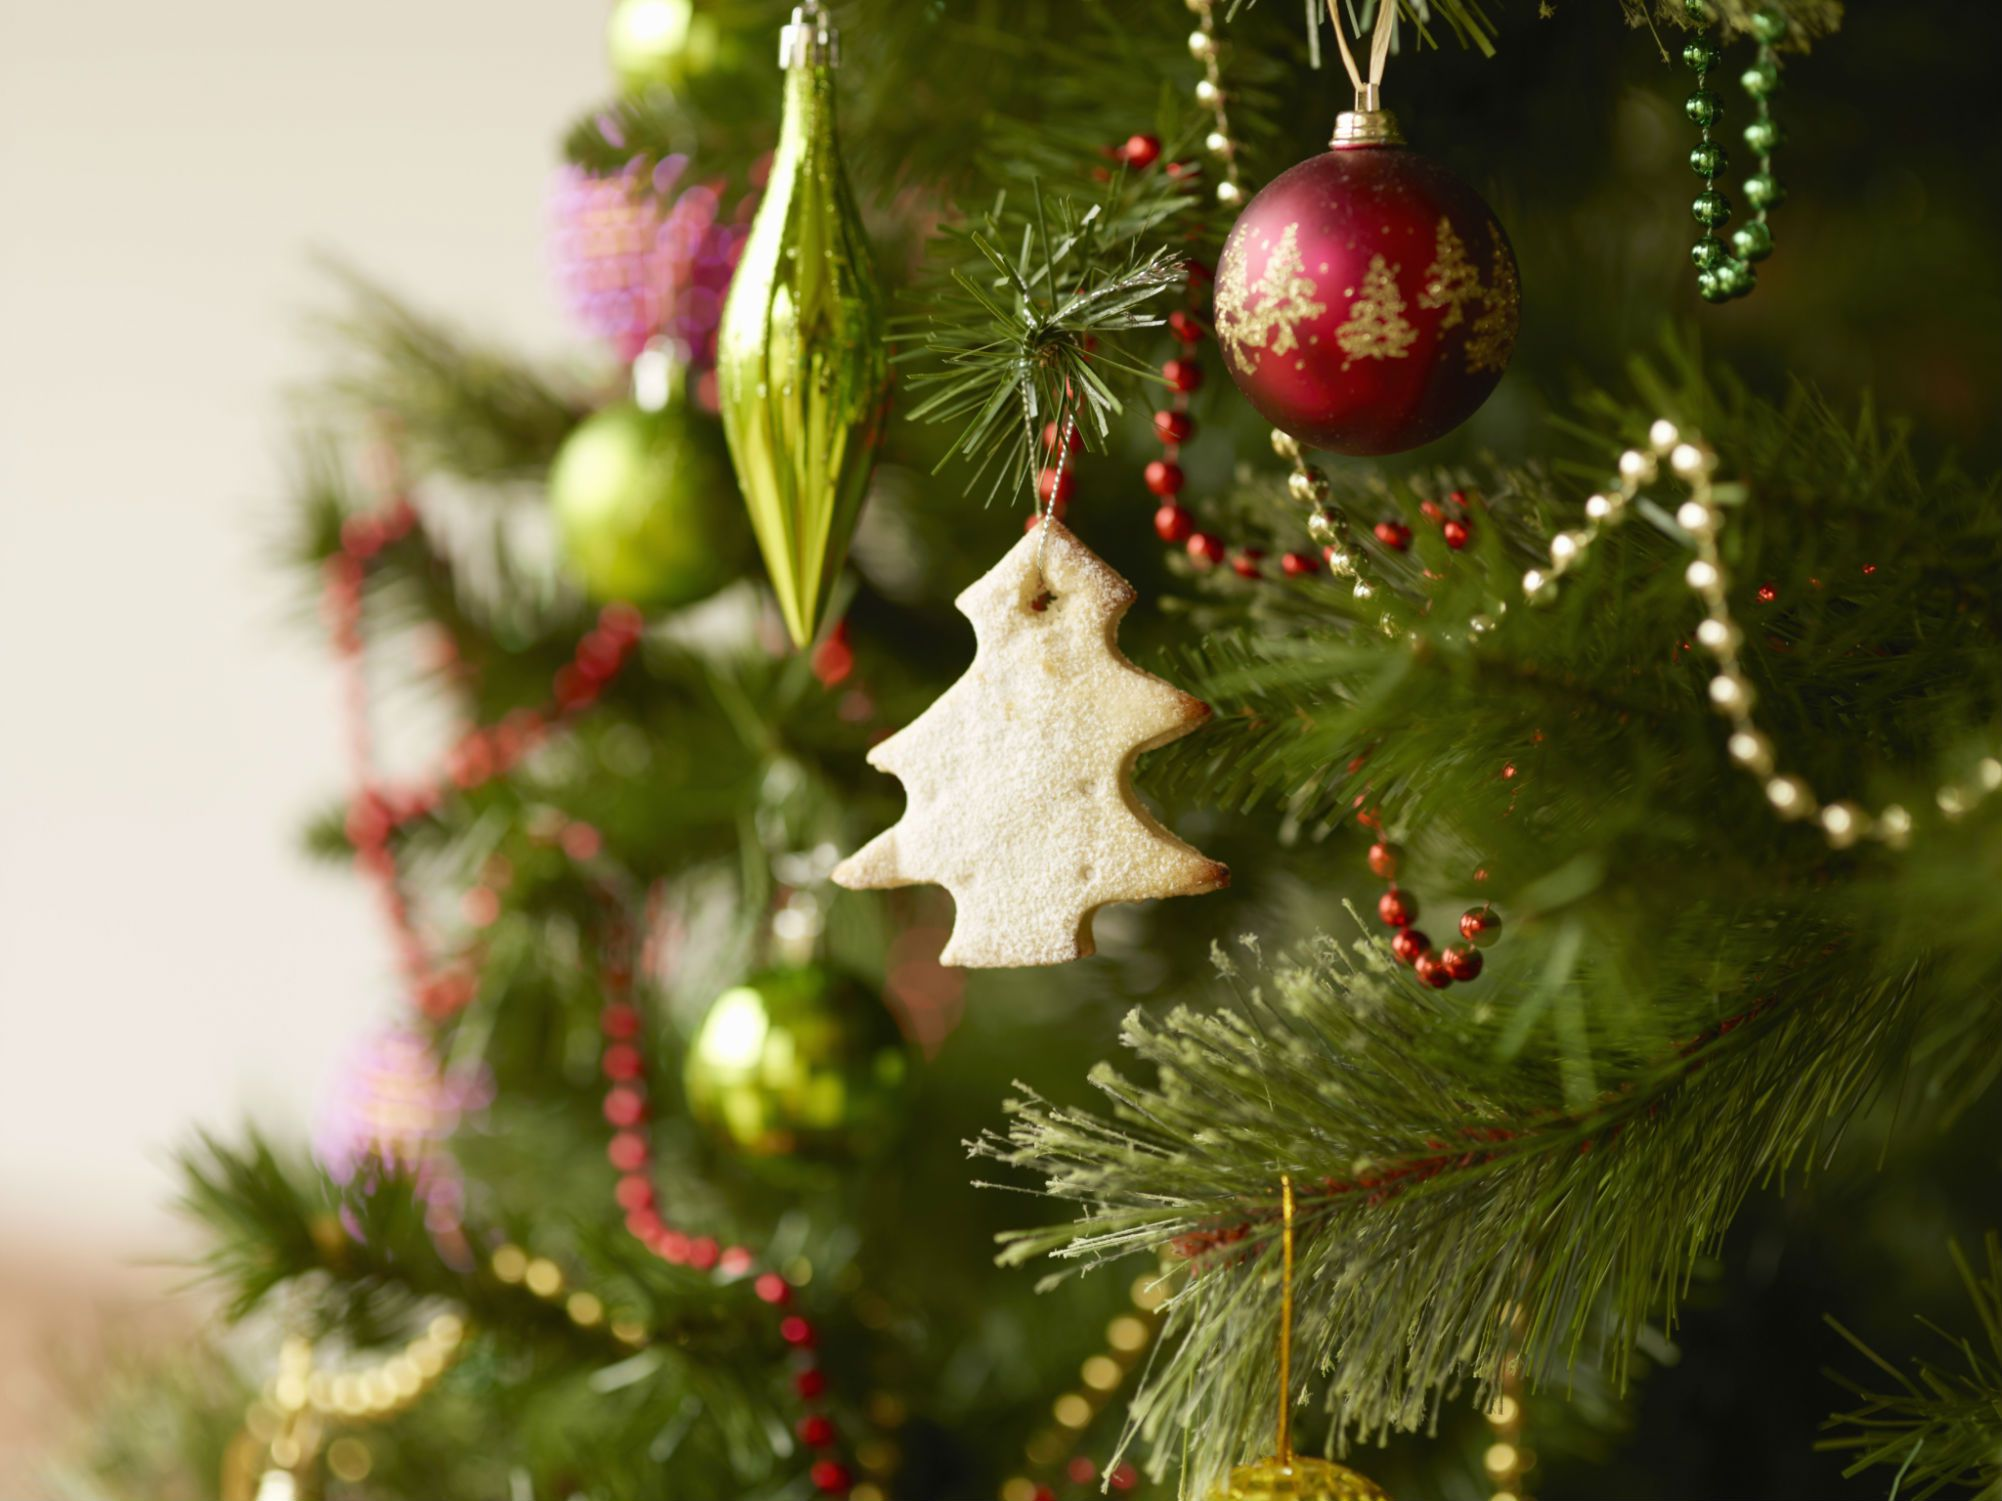 Are you better off buying a fake Christmas tree?